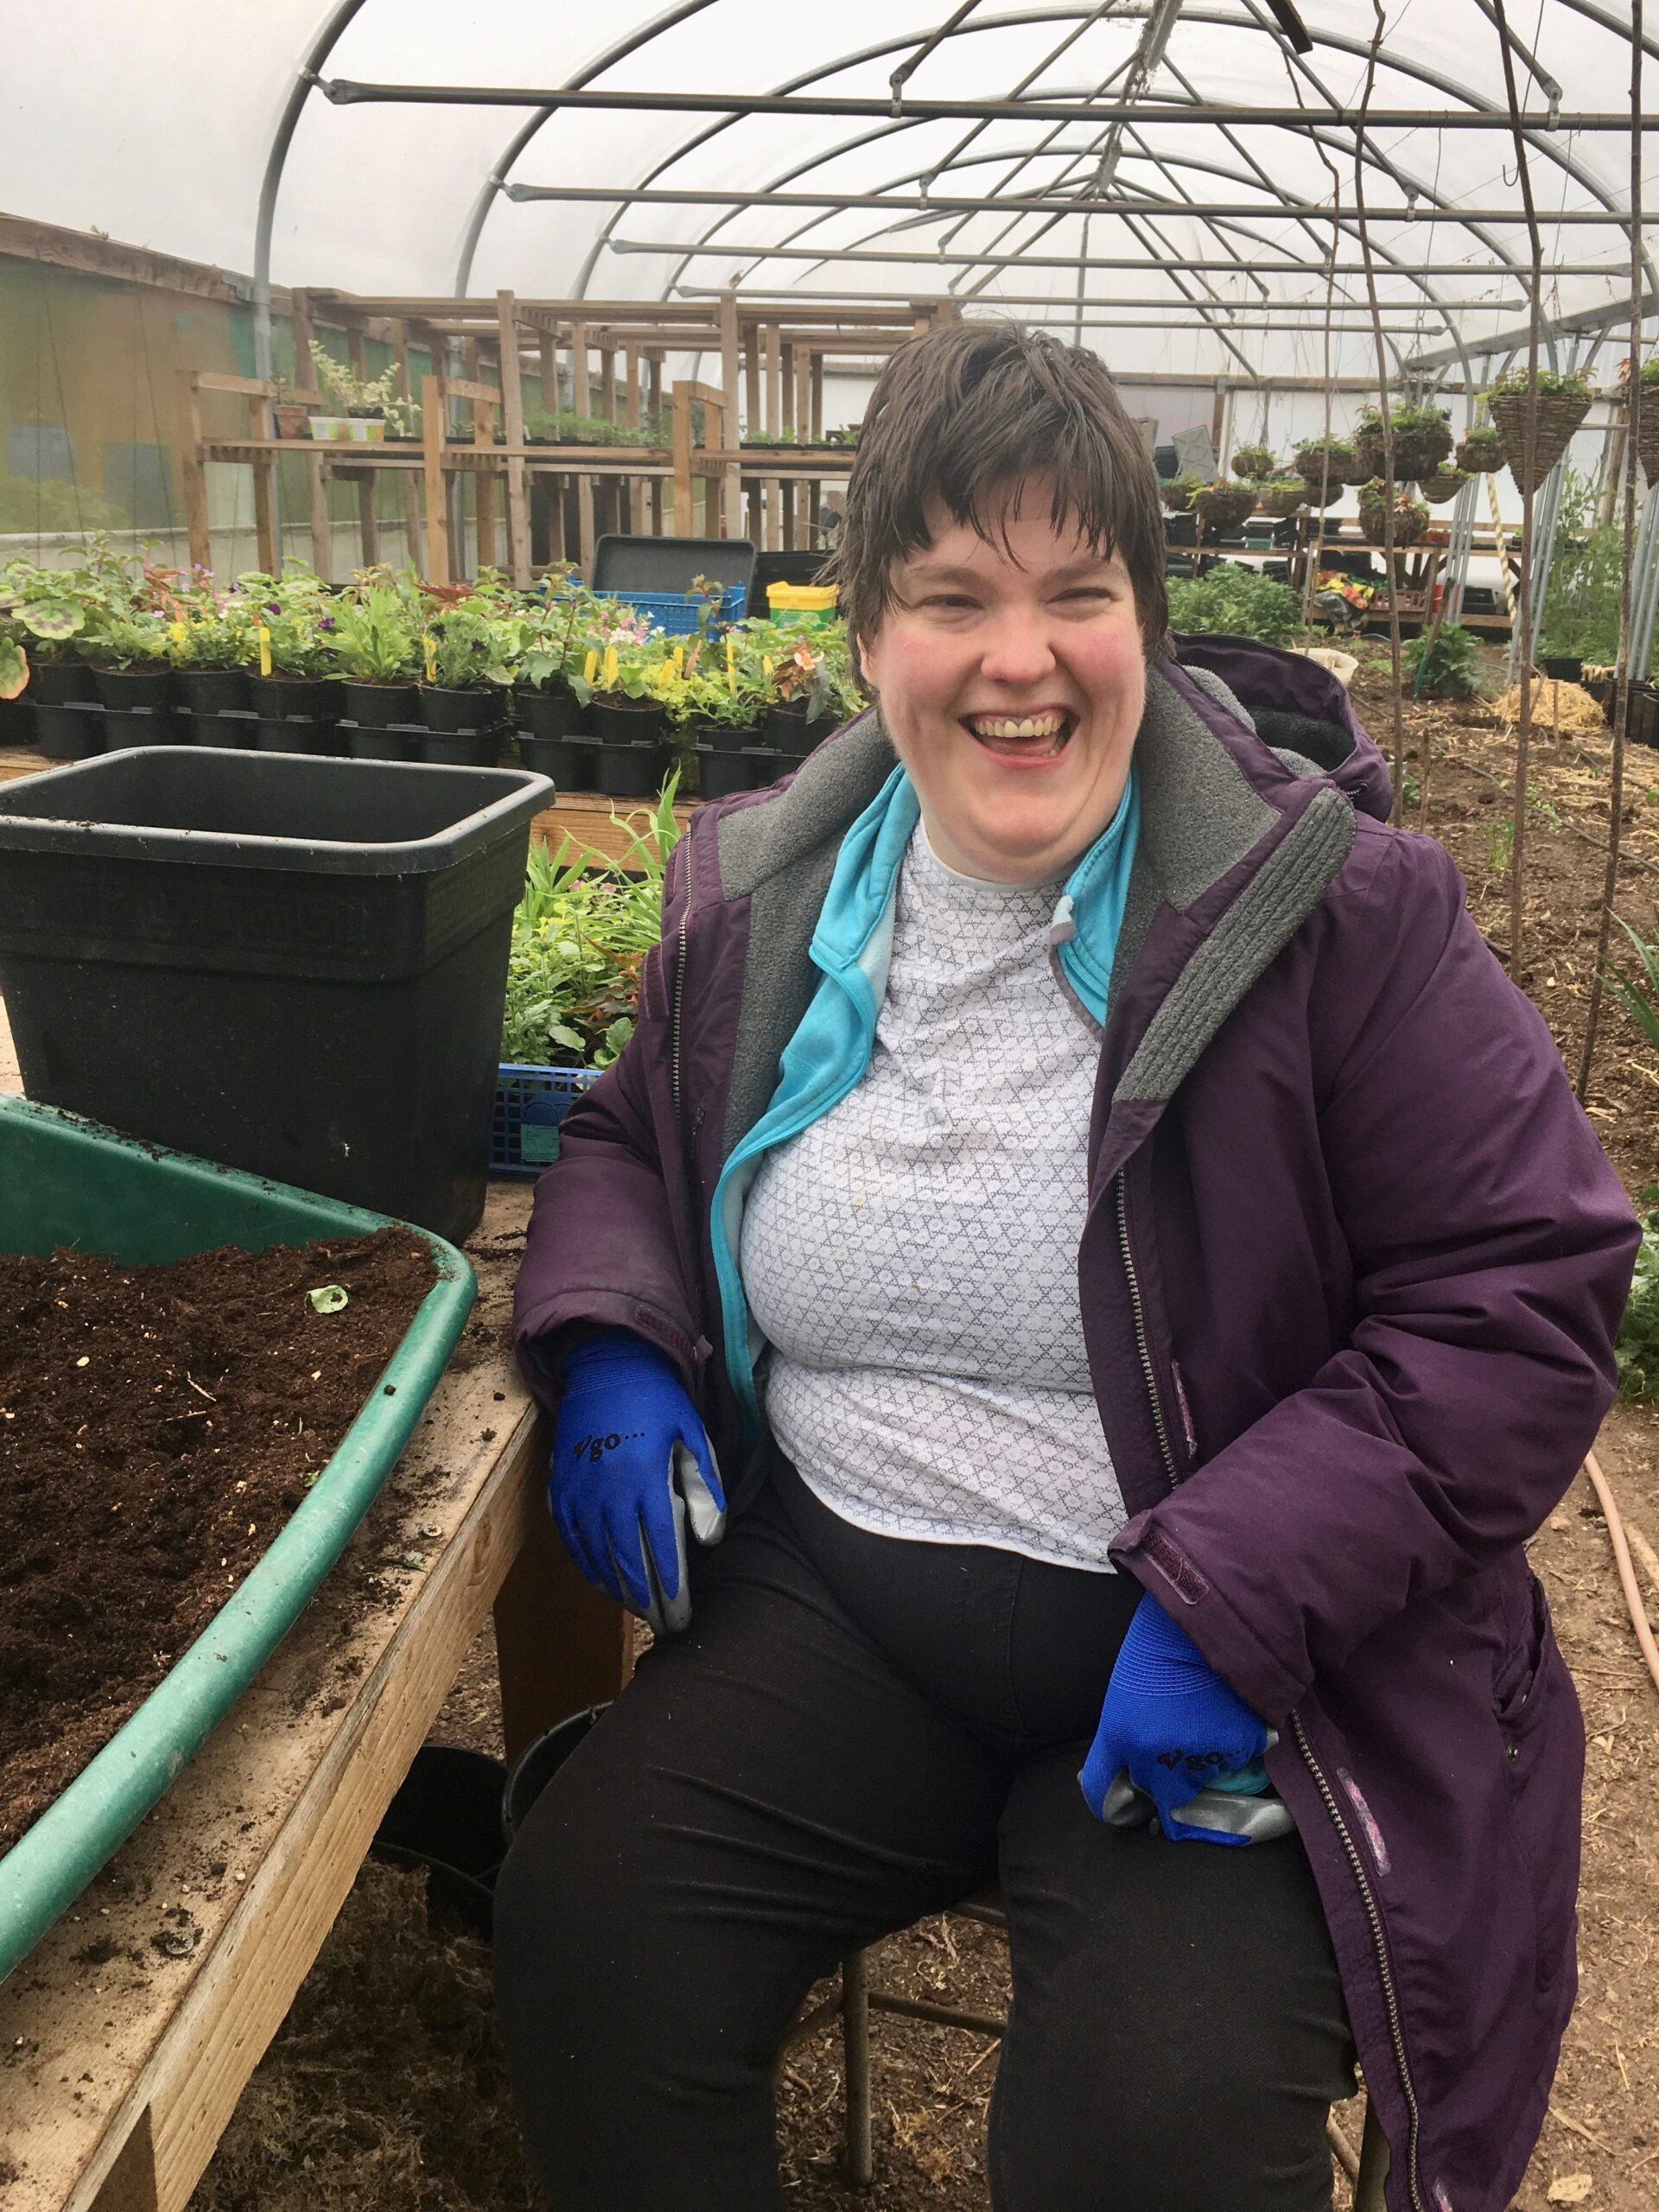 Chelsea enjoying herself at Flower Pod in the polytunnel